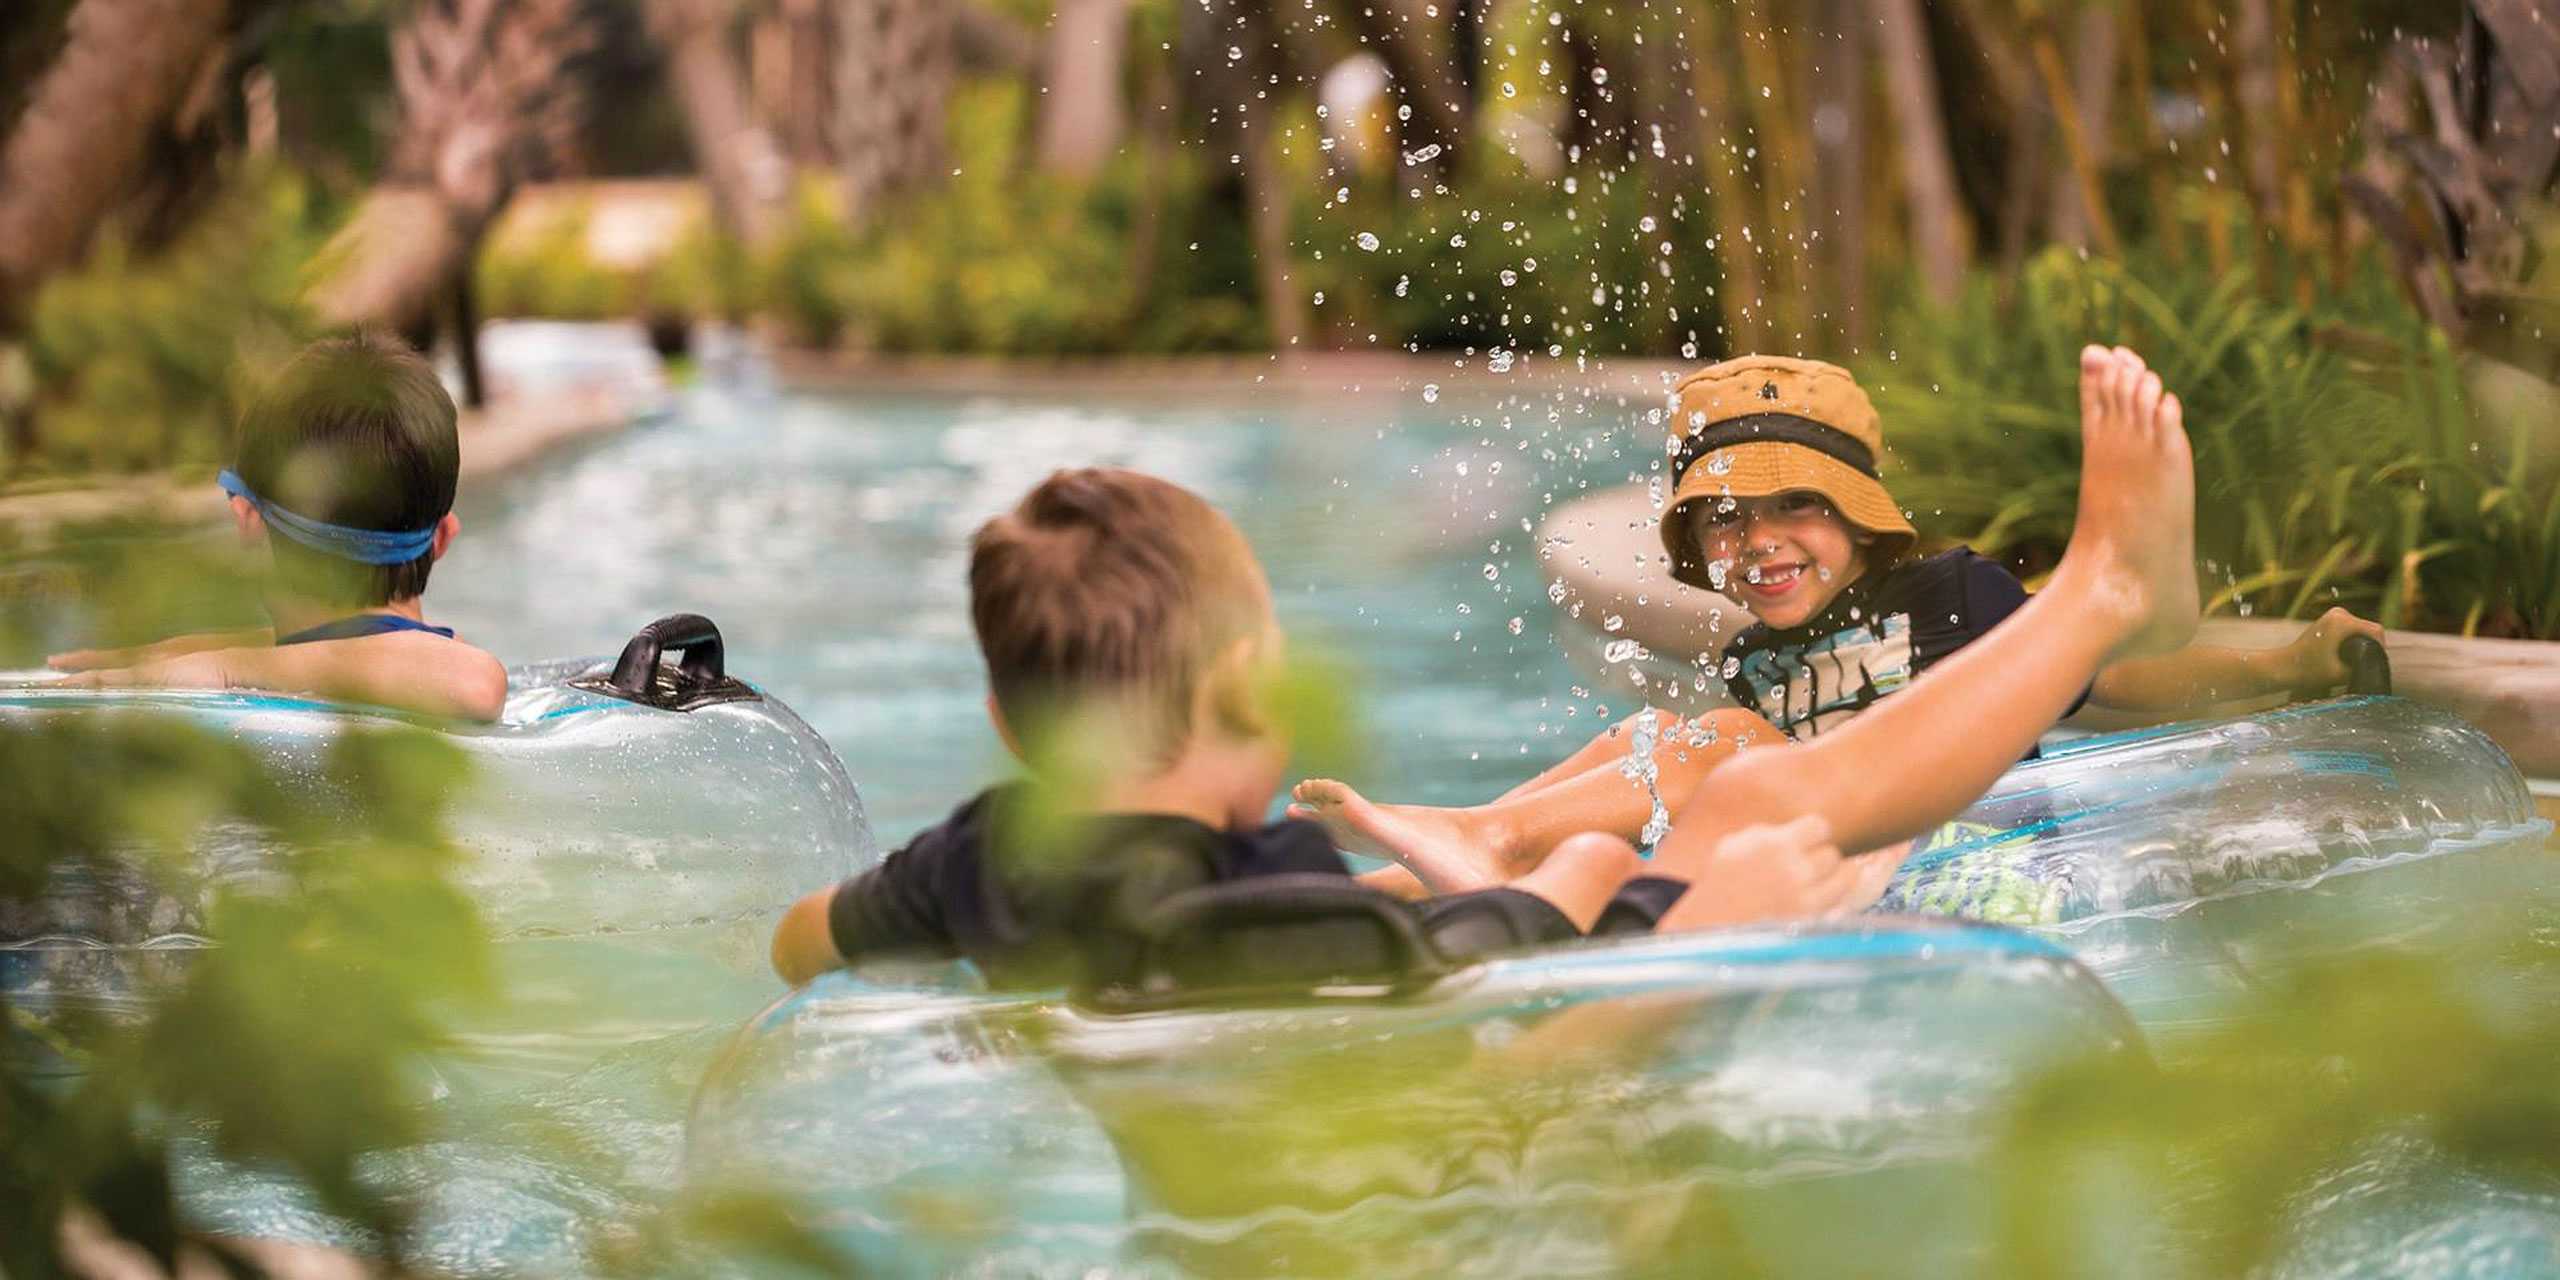 Young Boys Floating in Lazy River at Four Seasons Resort Orlando at Walt Disney World Resort; Courtesy of Four Seasons Resort Orlando at Walt Disney World Resort